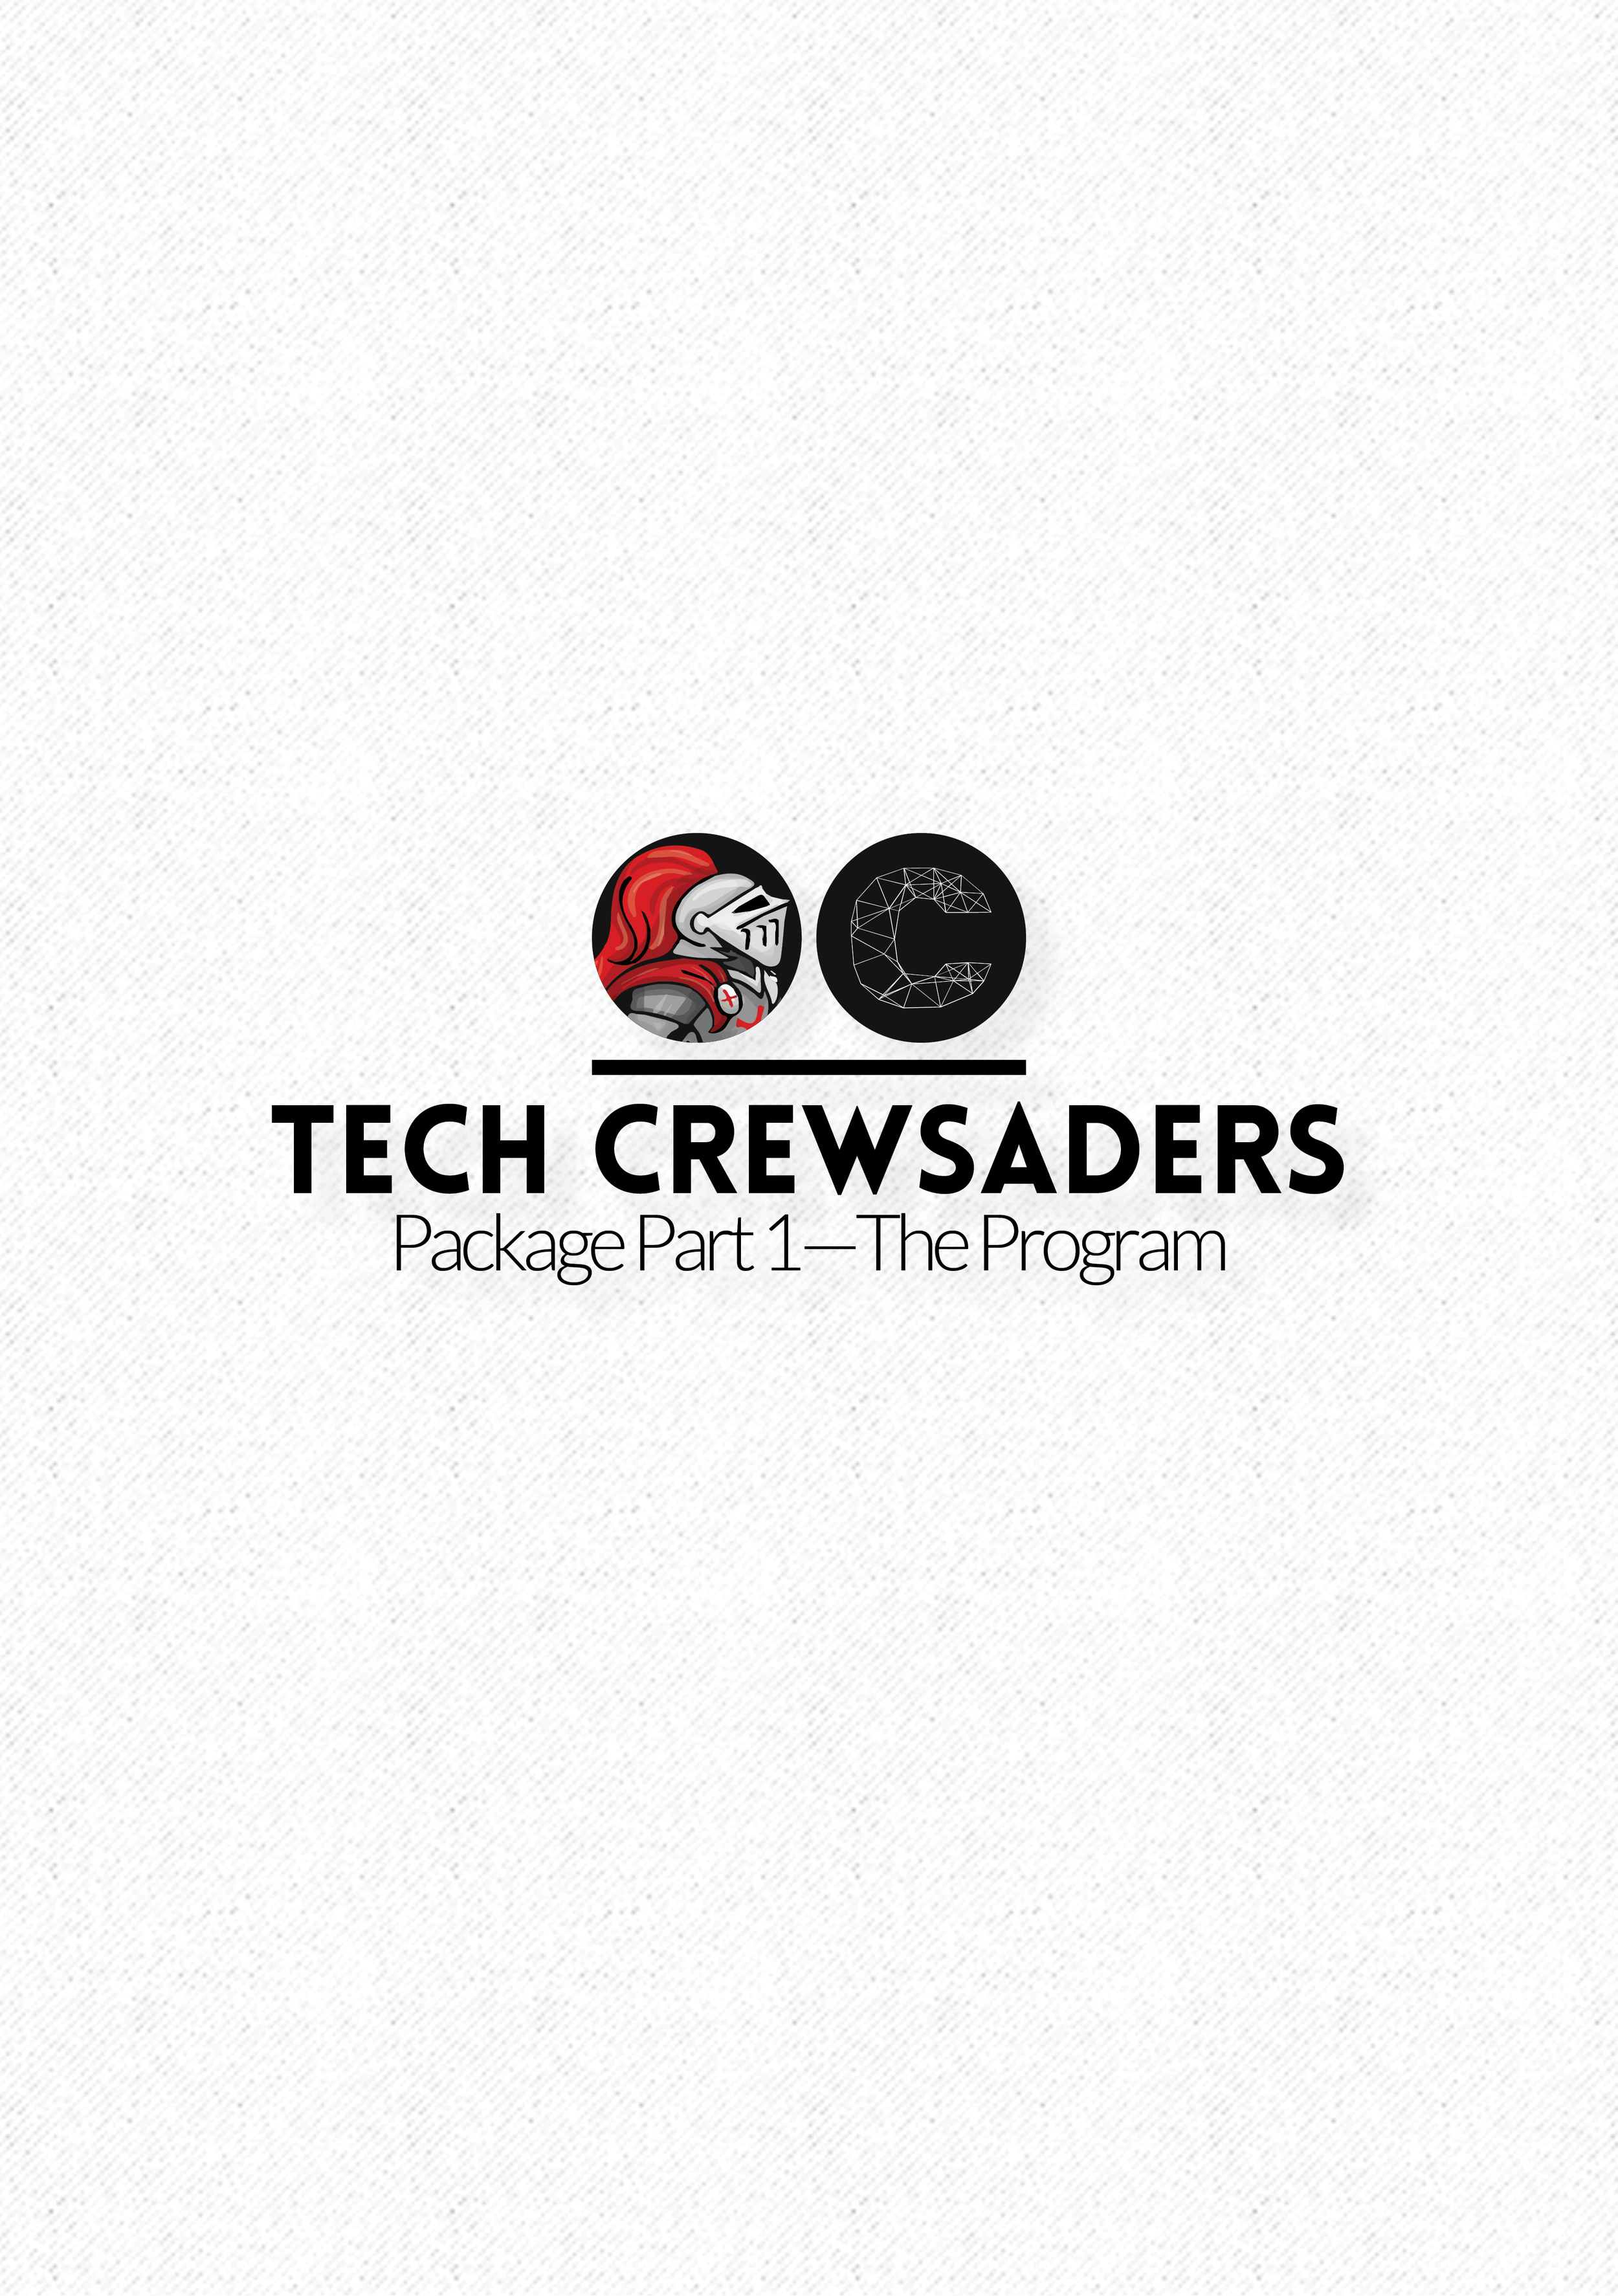 The Tech Crewsader Package Part 1 (The Program)